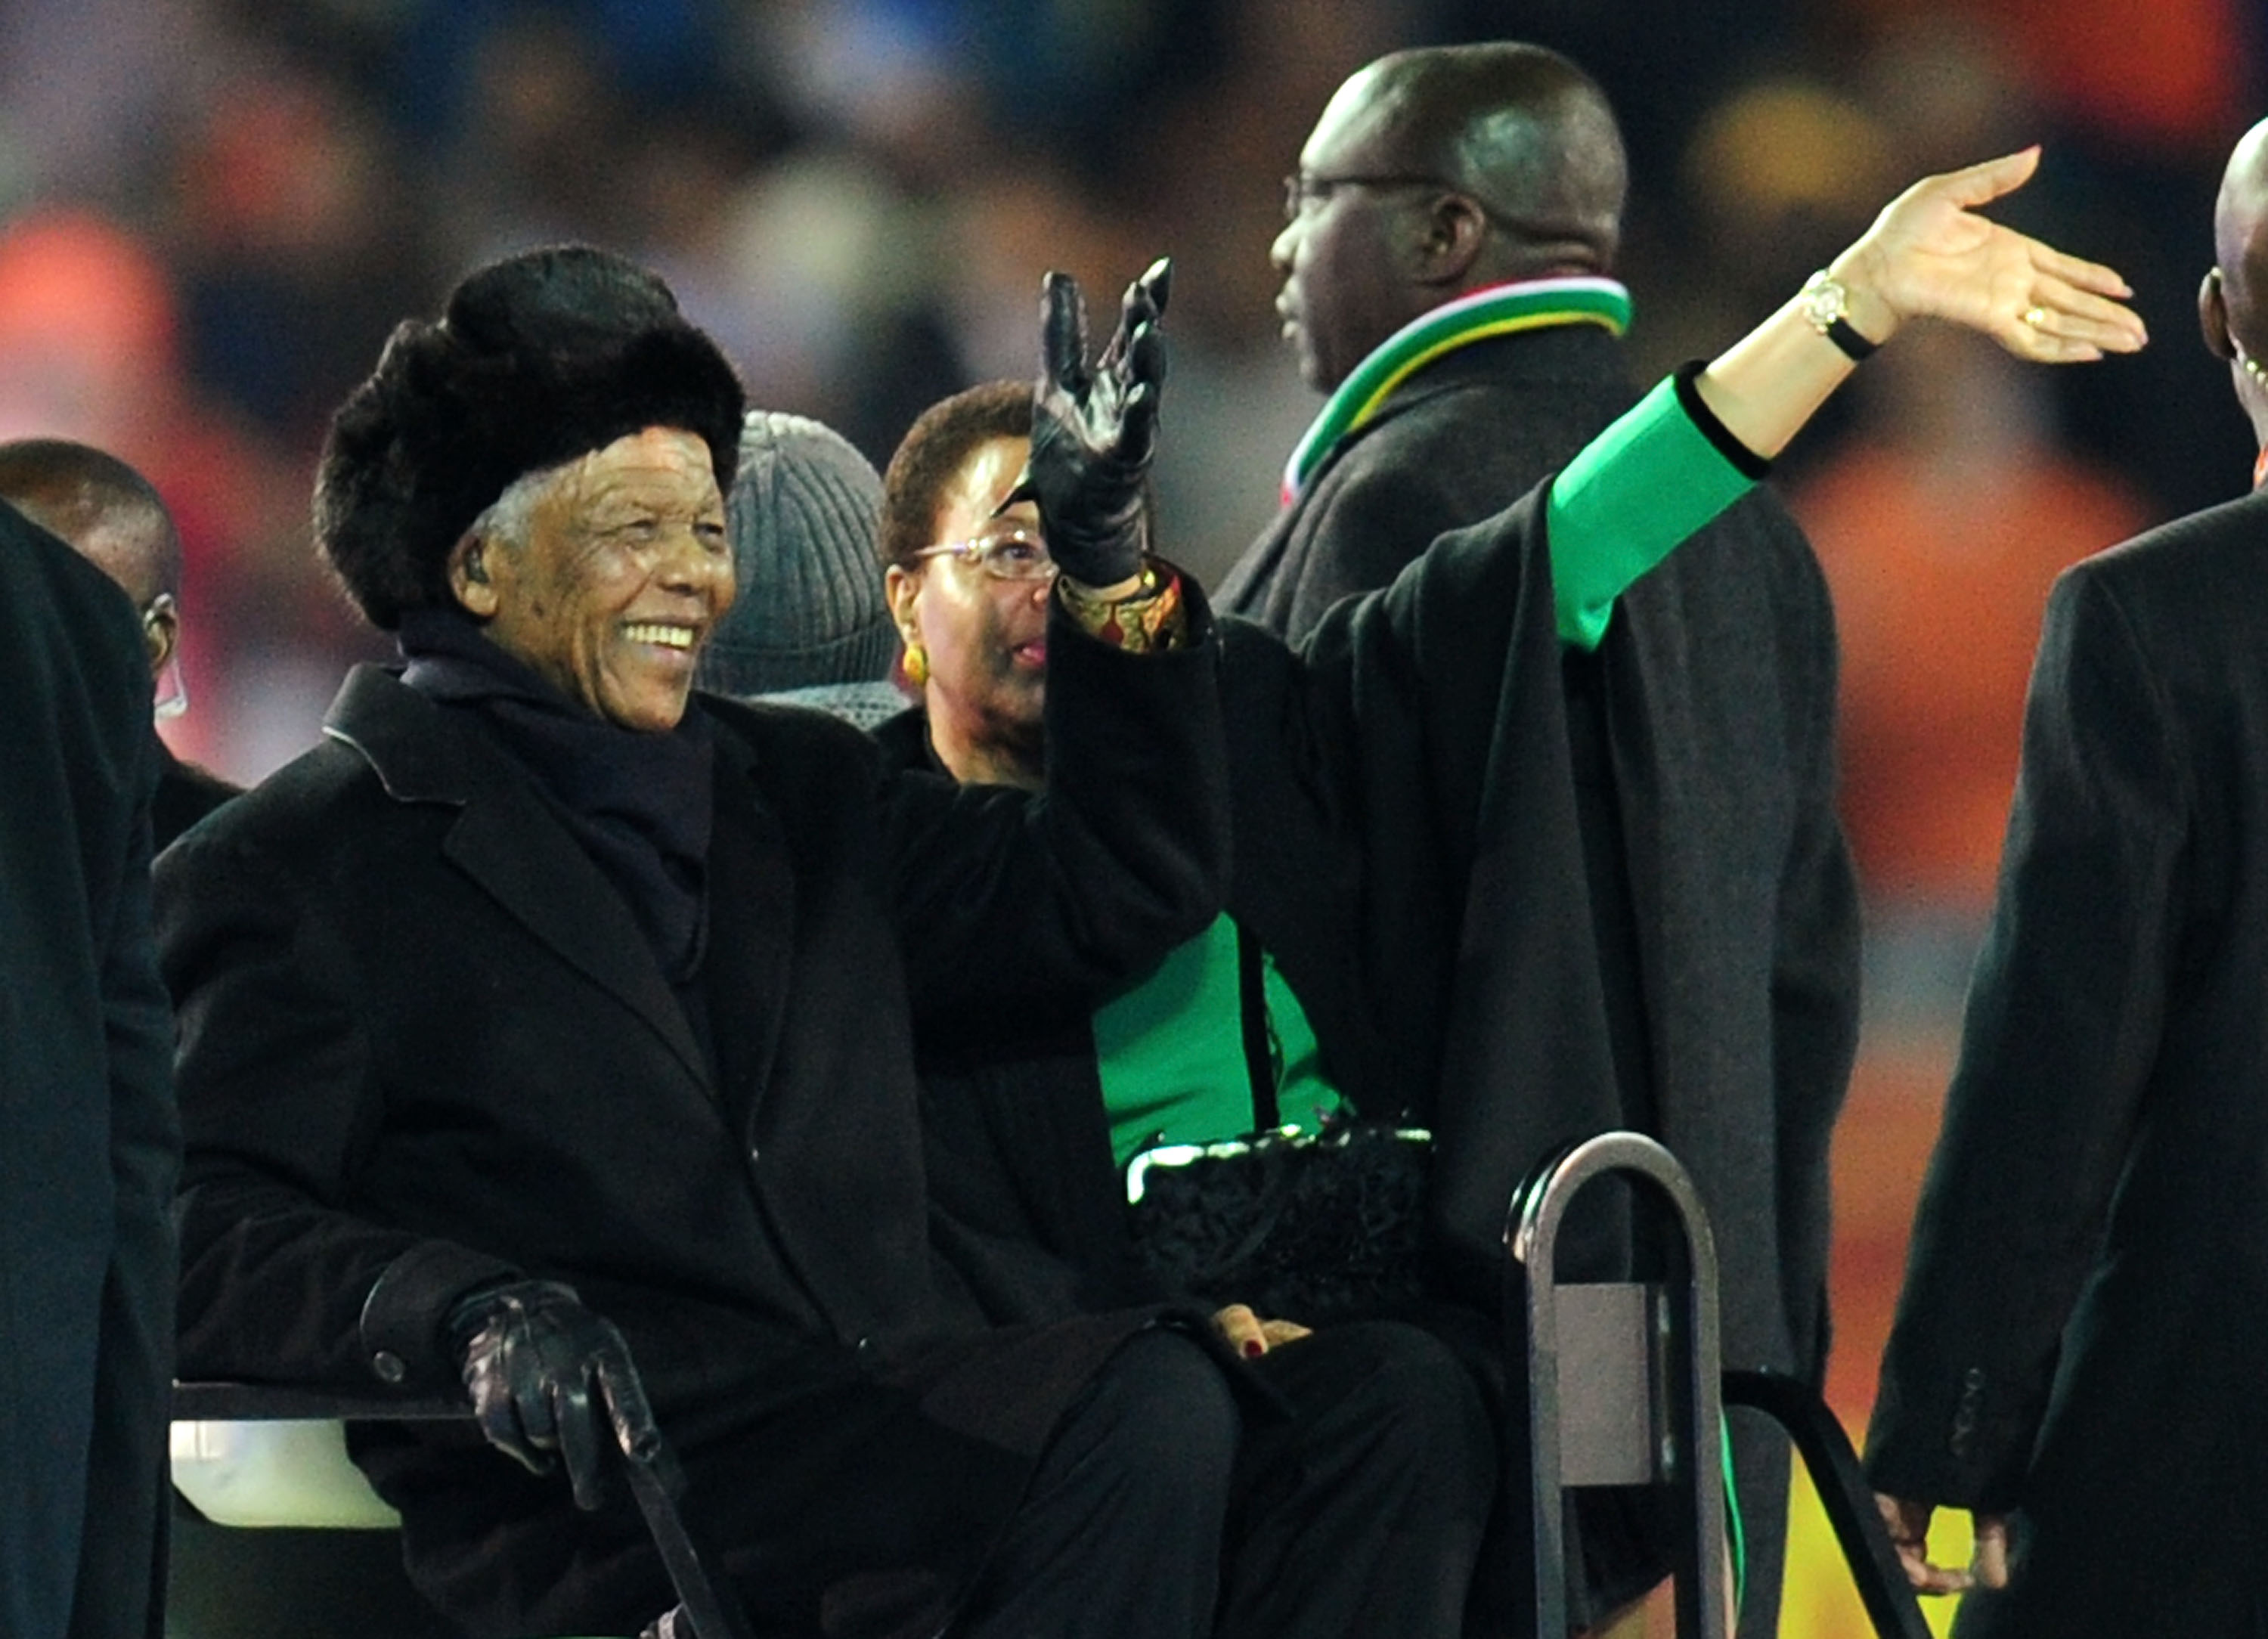 JOHANNESBURG, SOUTH AFRICA - JULY 11:  Former South Africa President Nelson Mandela and wife Graca Machel wave to the crowds prior to the 2010 FIFA World Cup South Africa Final match between Netherlands and Spain at Soccer City Stadium on July 11, 2010 in